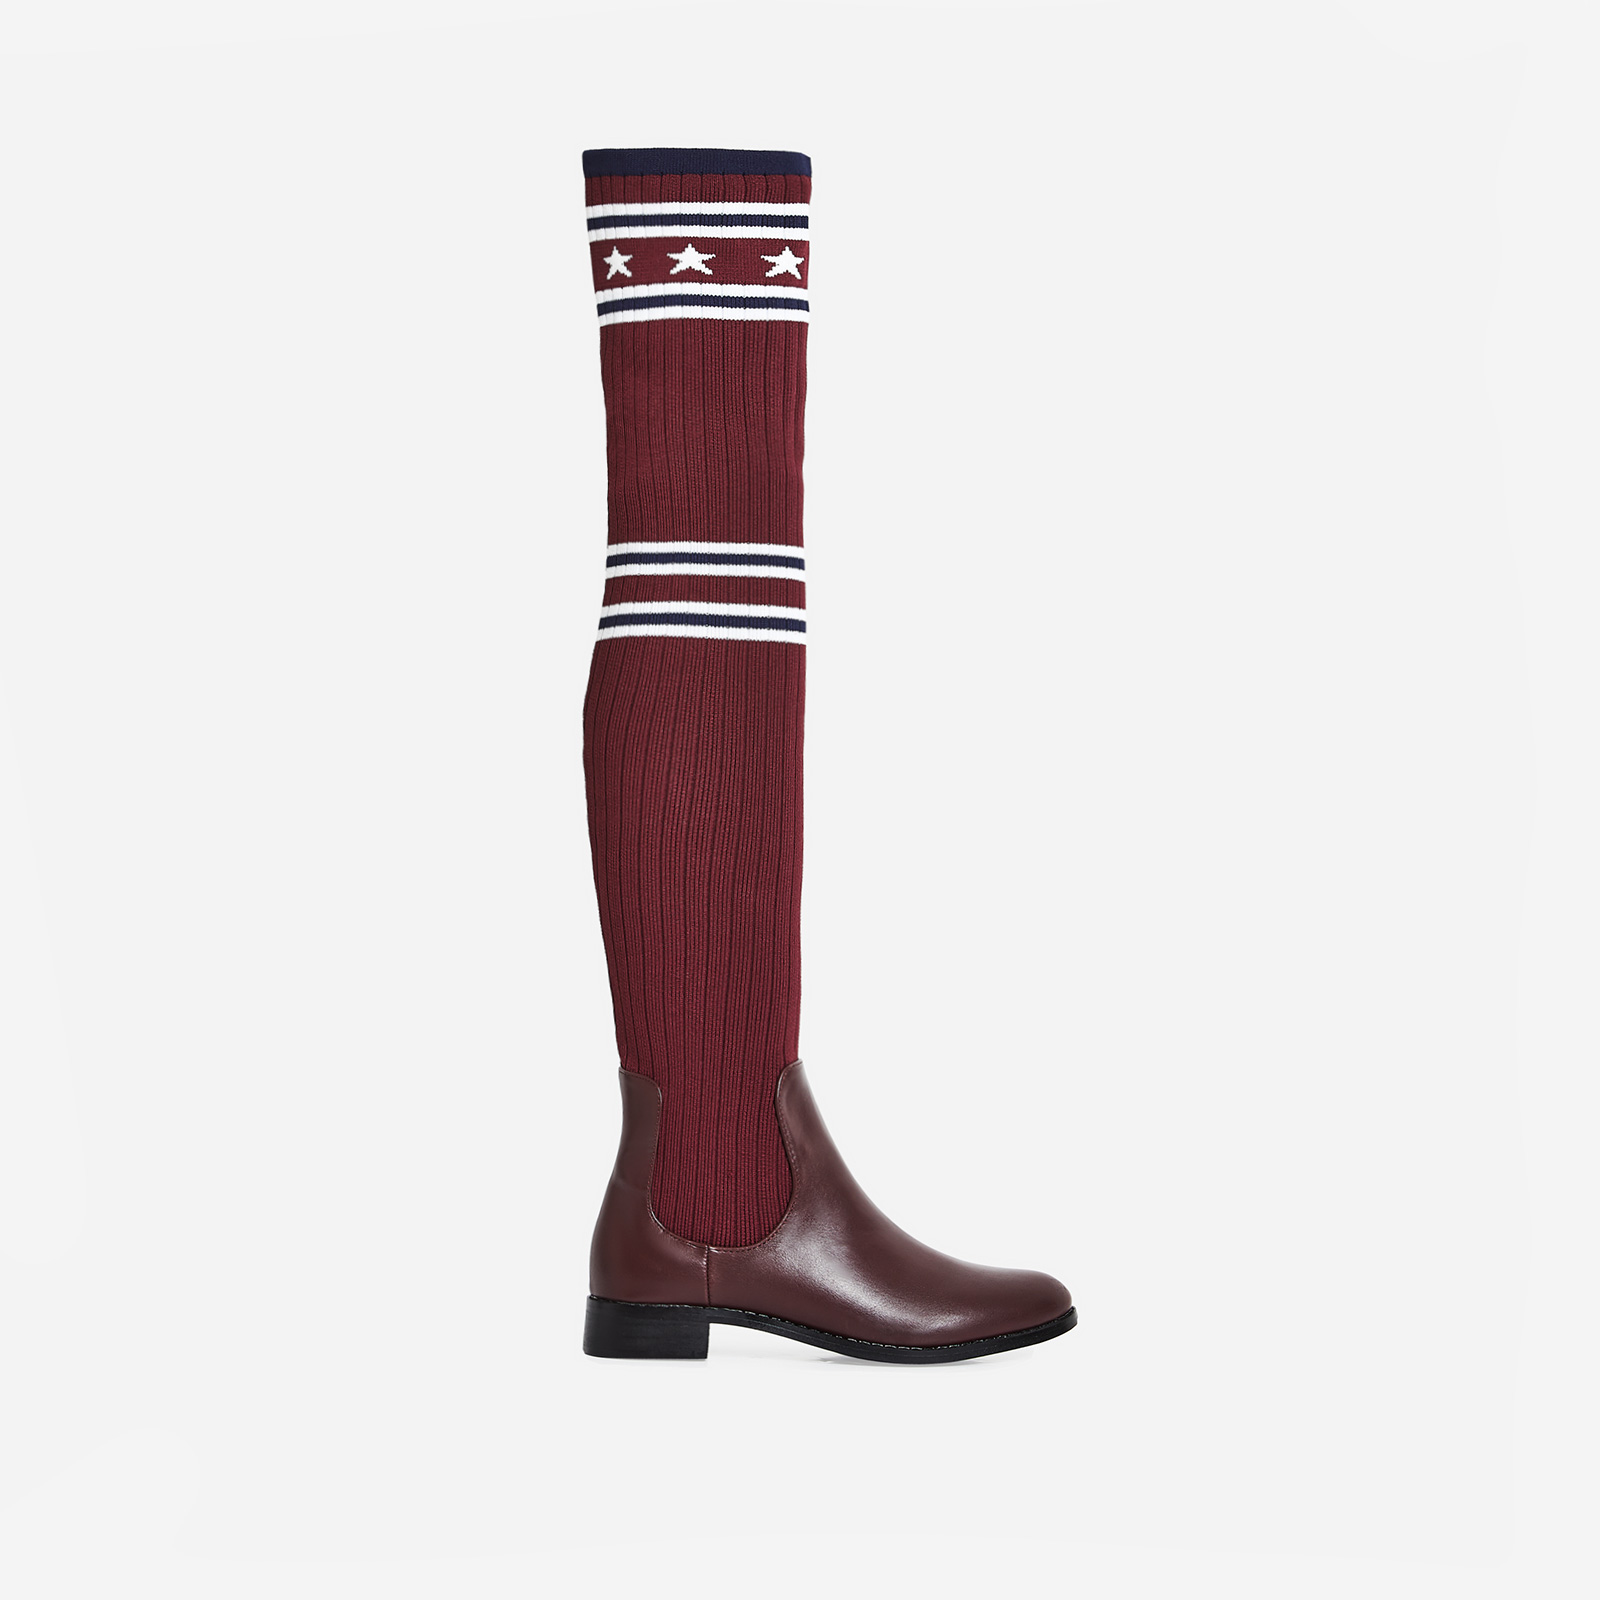 Metis Knitted Knee High Long Boot In Burgundy Faux Leather